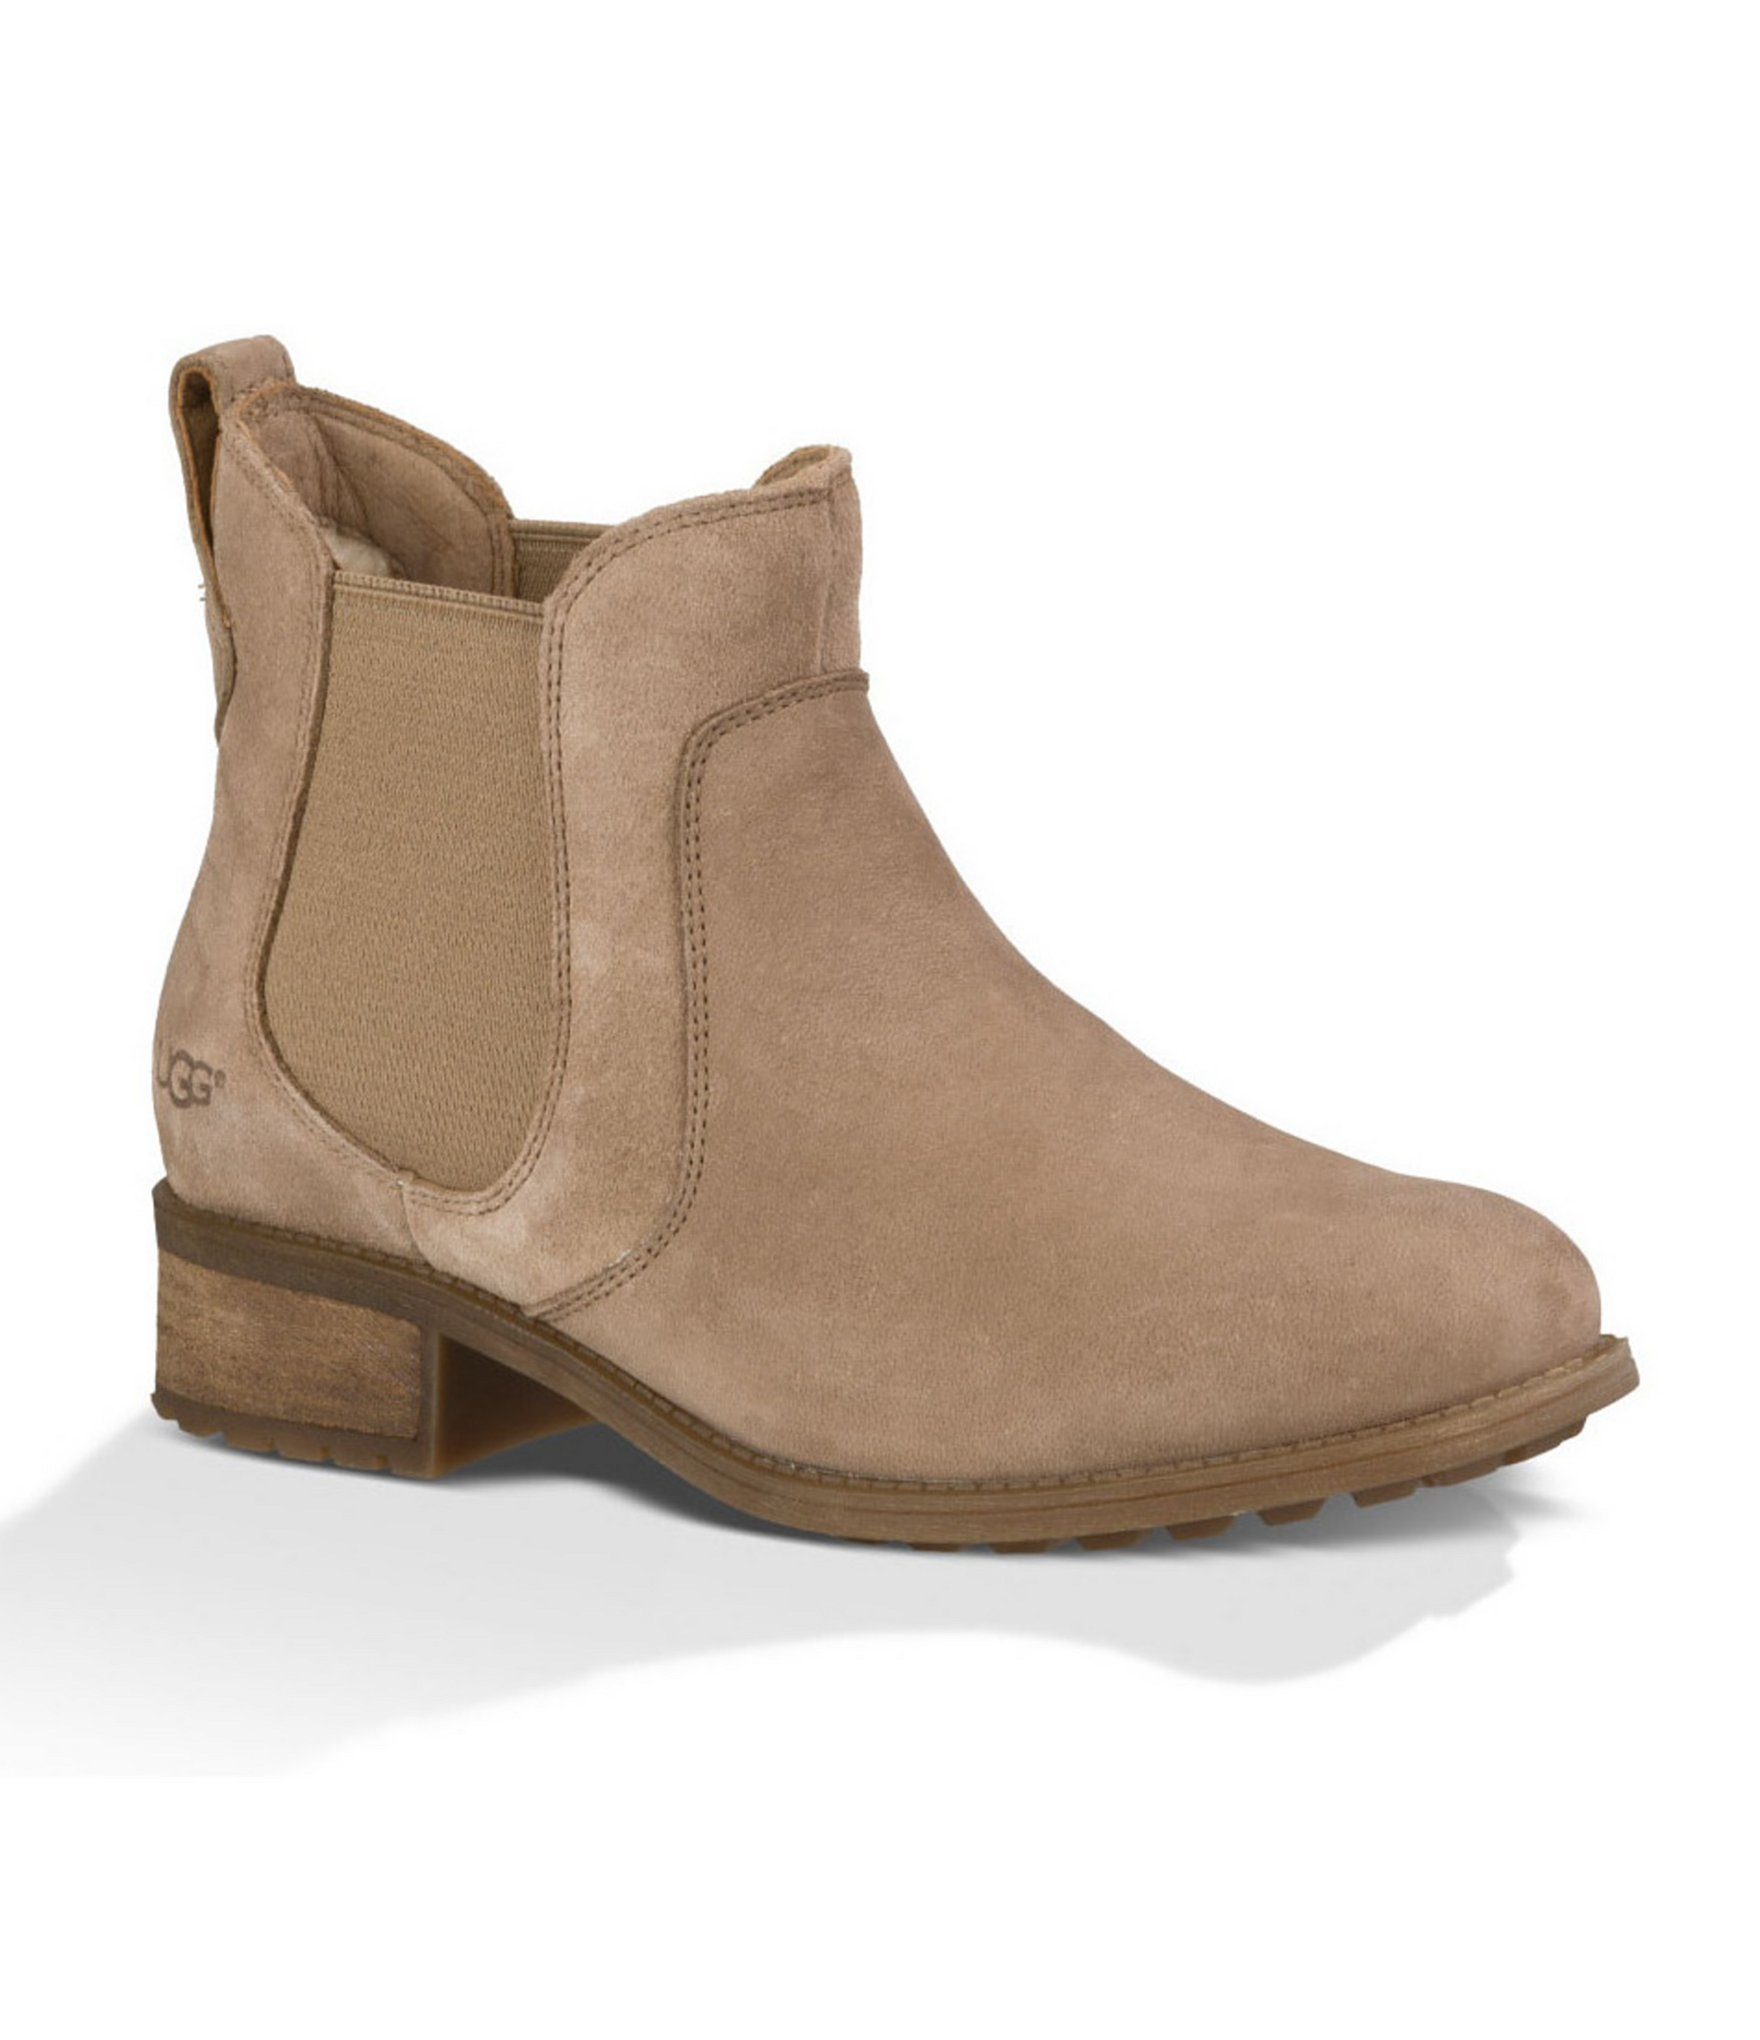 4d1f6d86853 Stores That Sell Uggs In Philadelphia - cheap watches mgc-gas.com